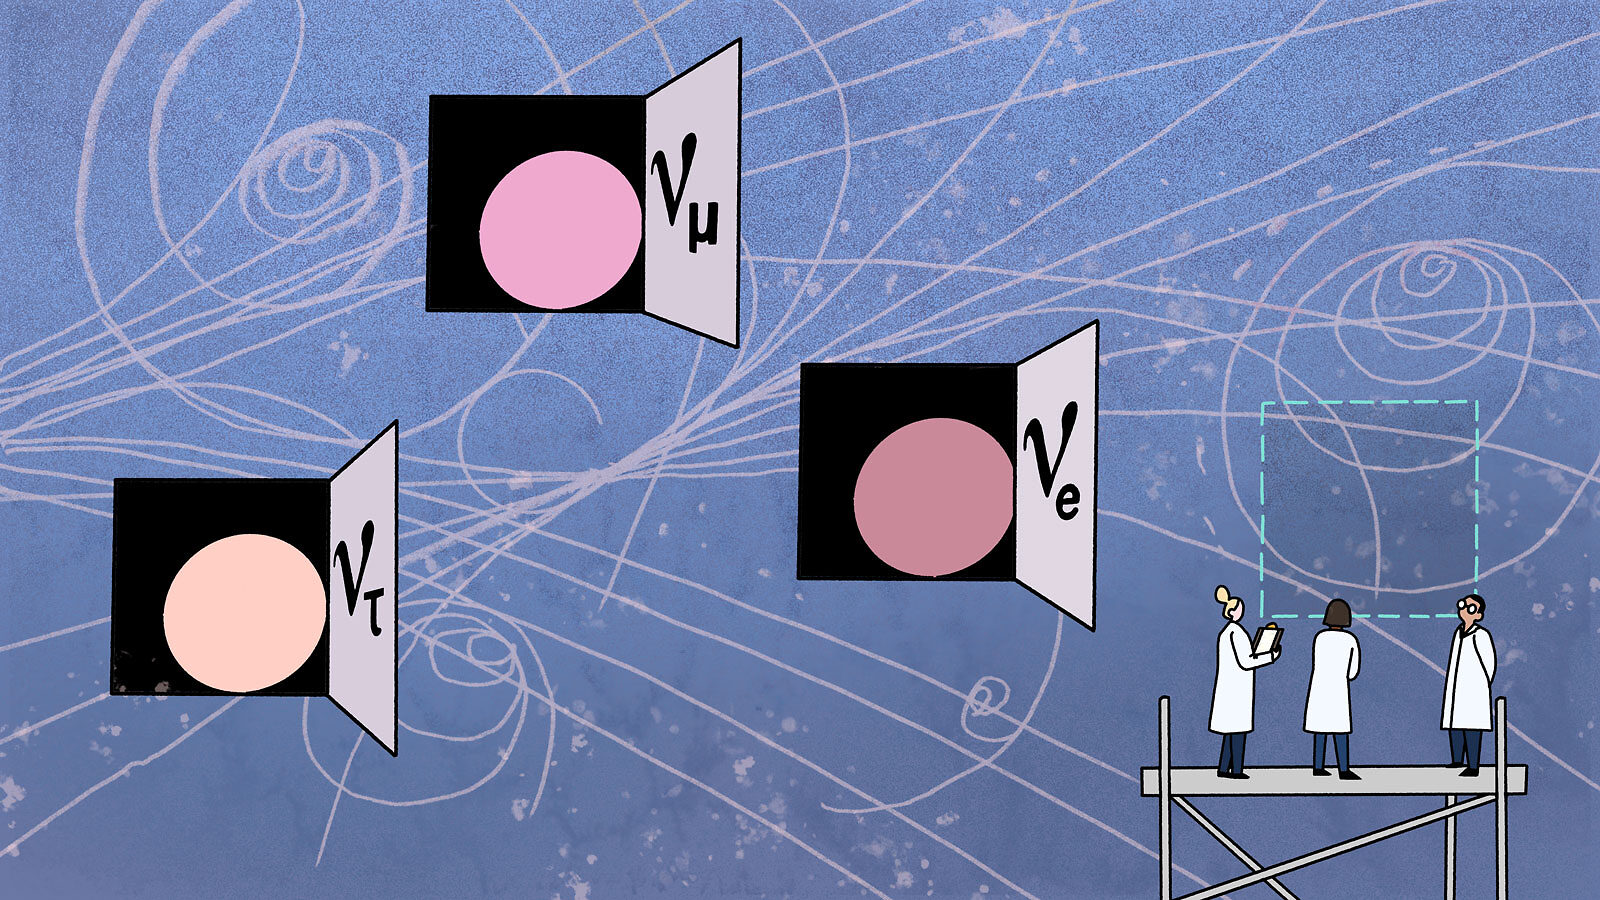 Illustration: Neutrinos revealed in particle physics advent calendar with scientists eyeing another possibility